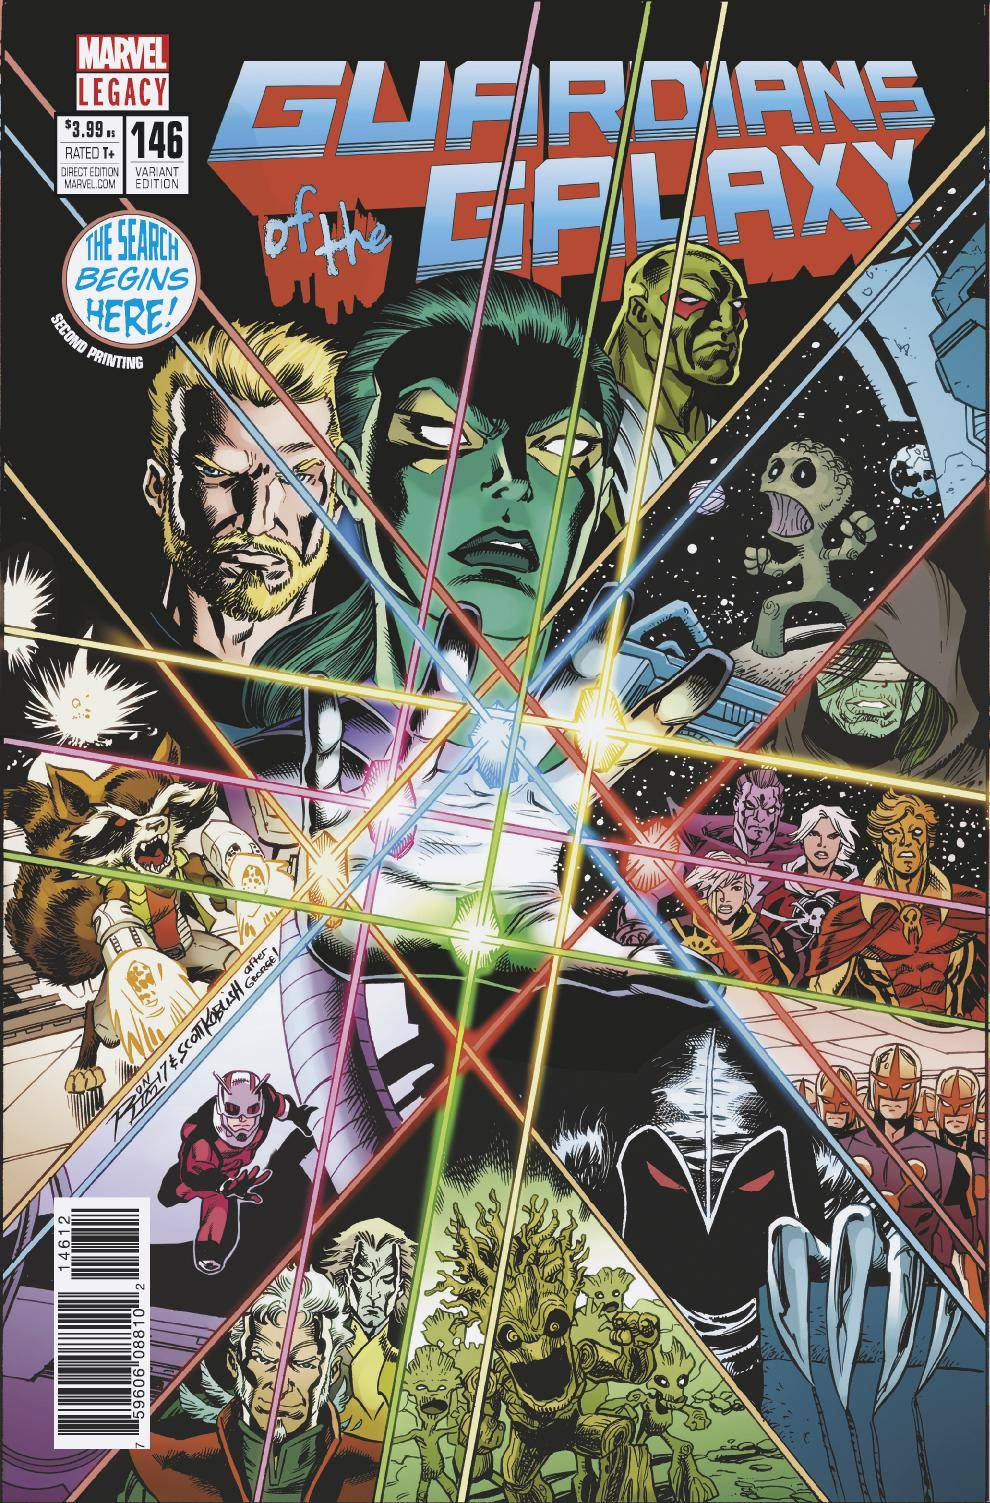 GUARDIANS OF THE GALAXY#146